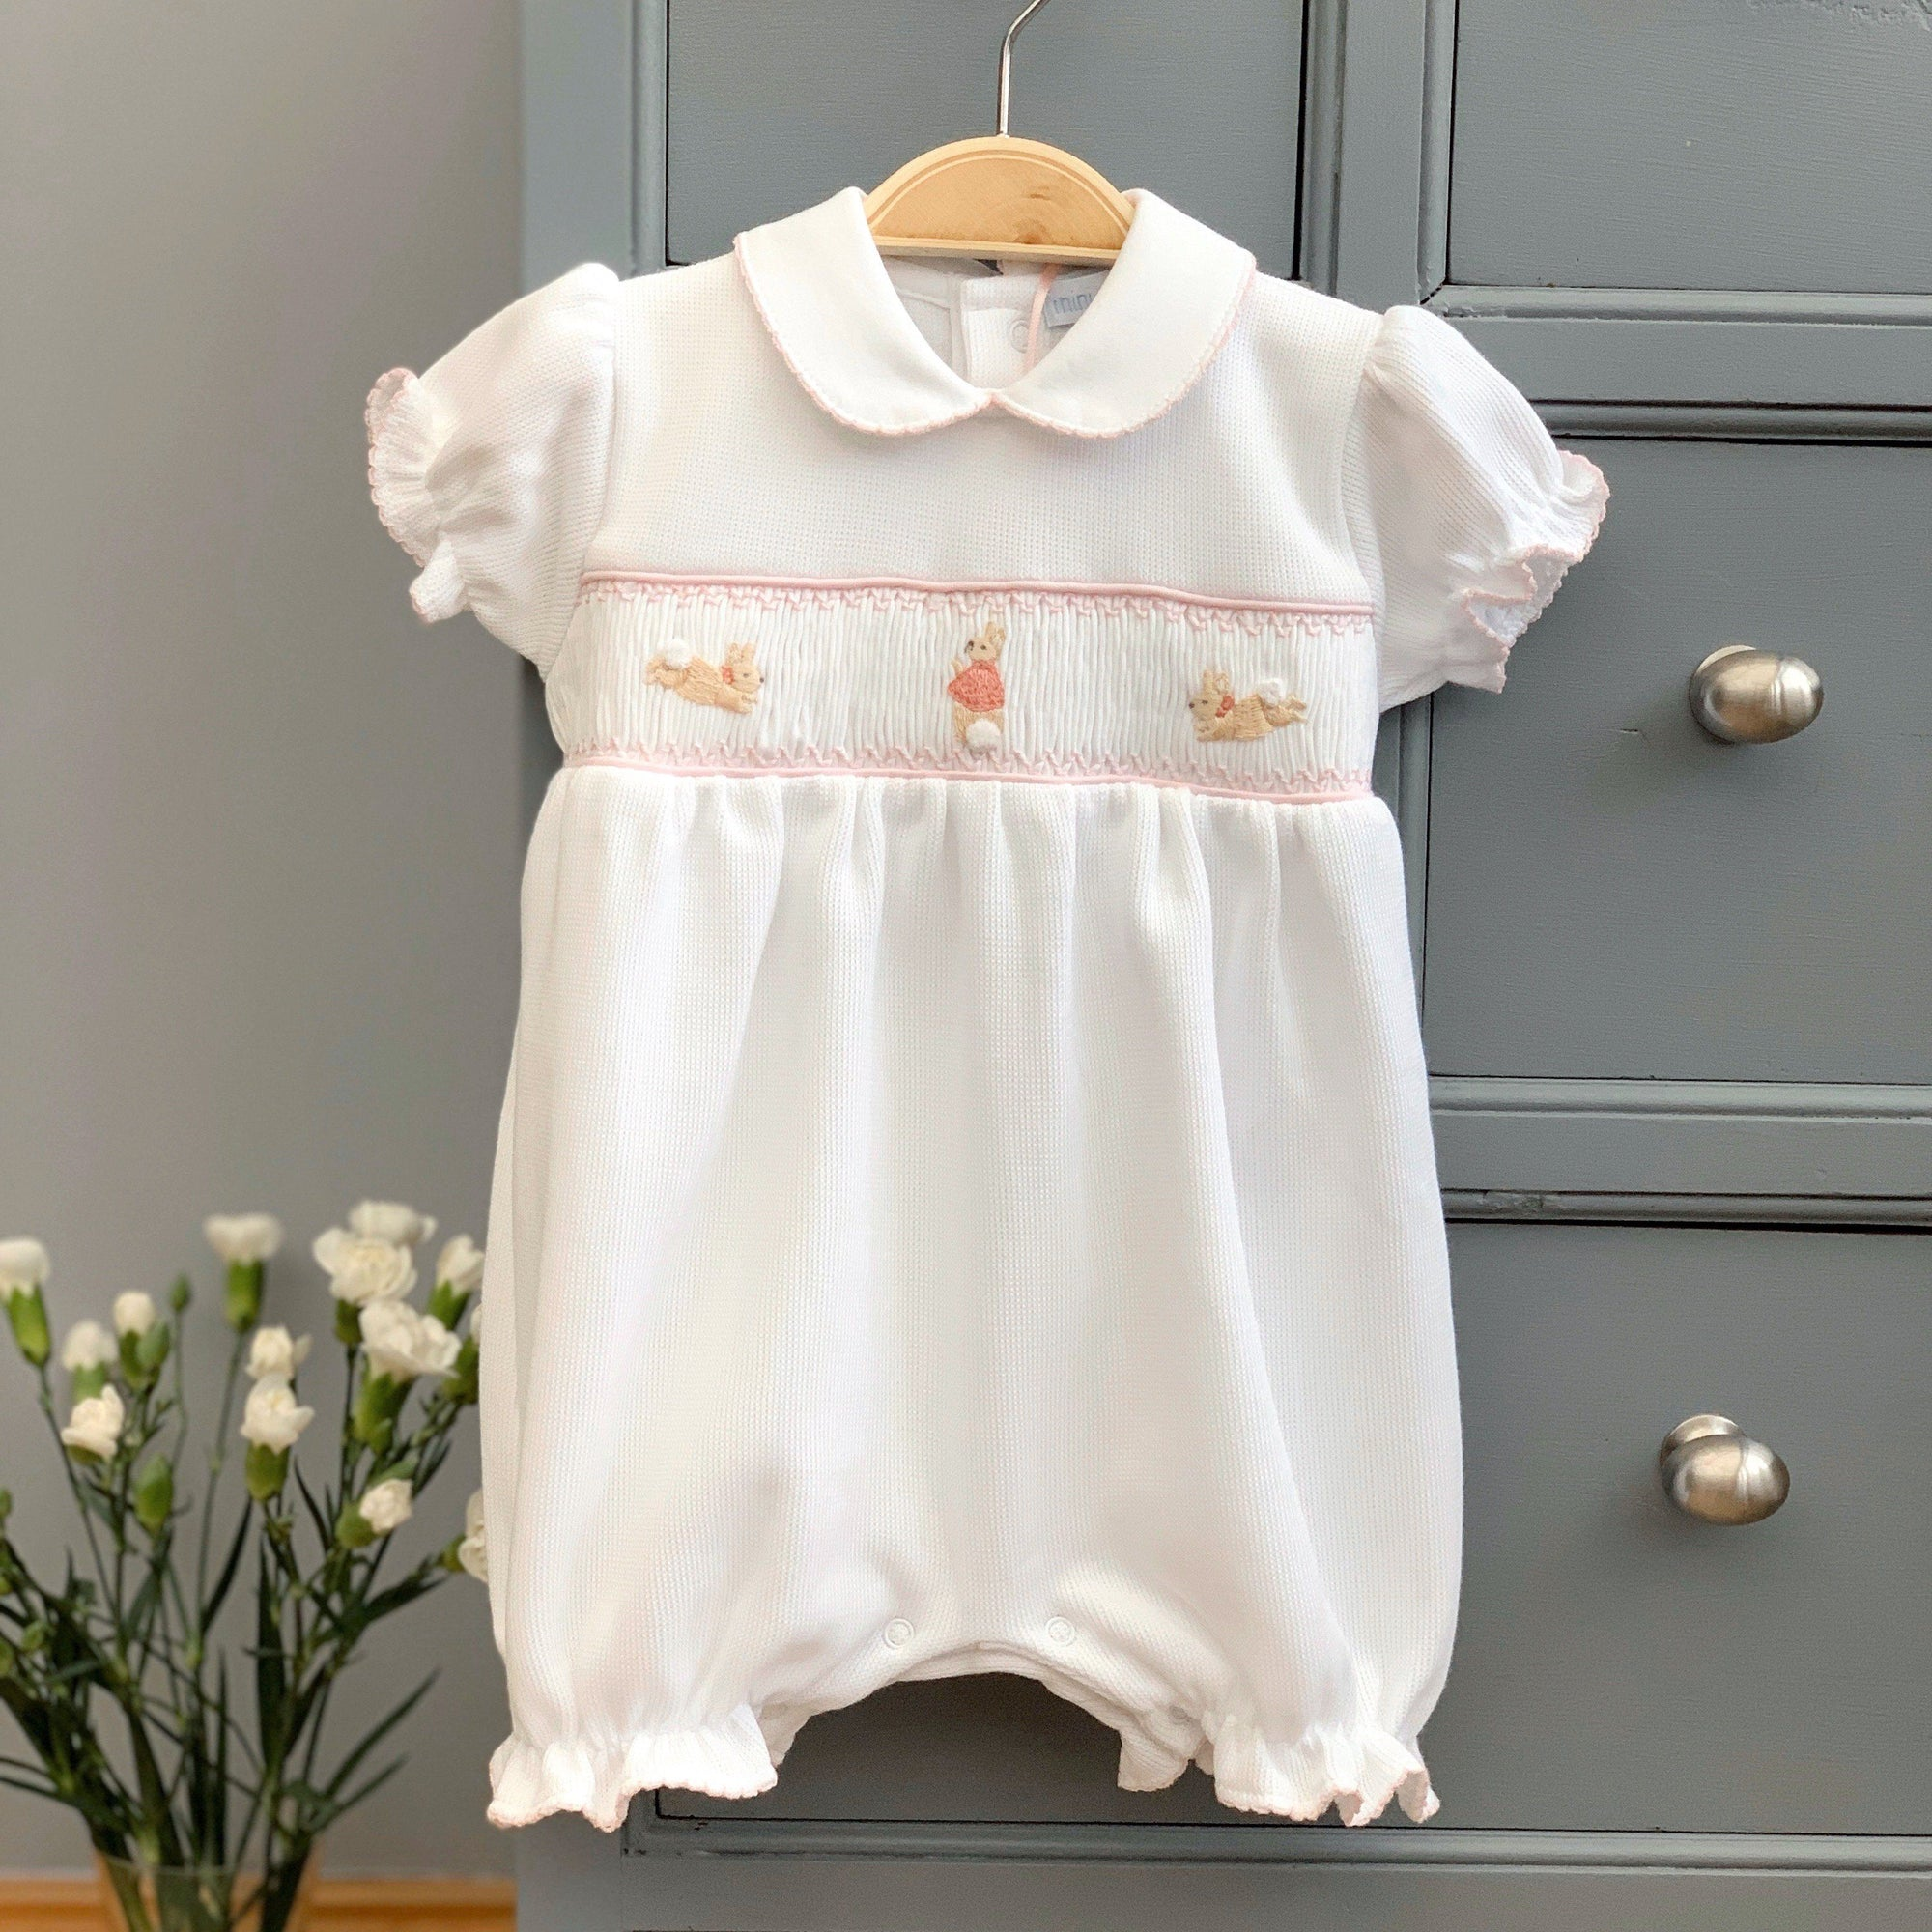 The Flopsy Bunnies White Smocked Knit Romper